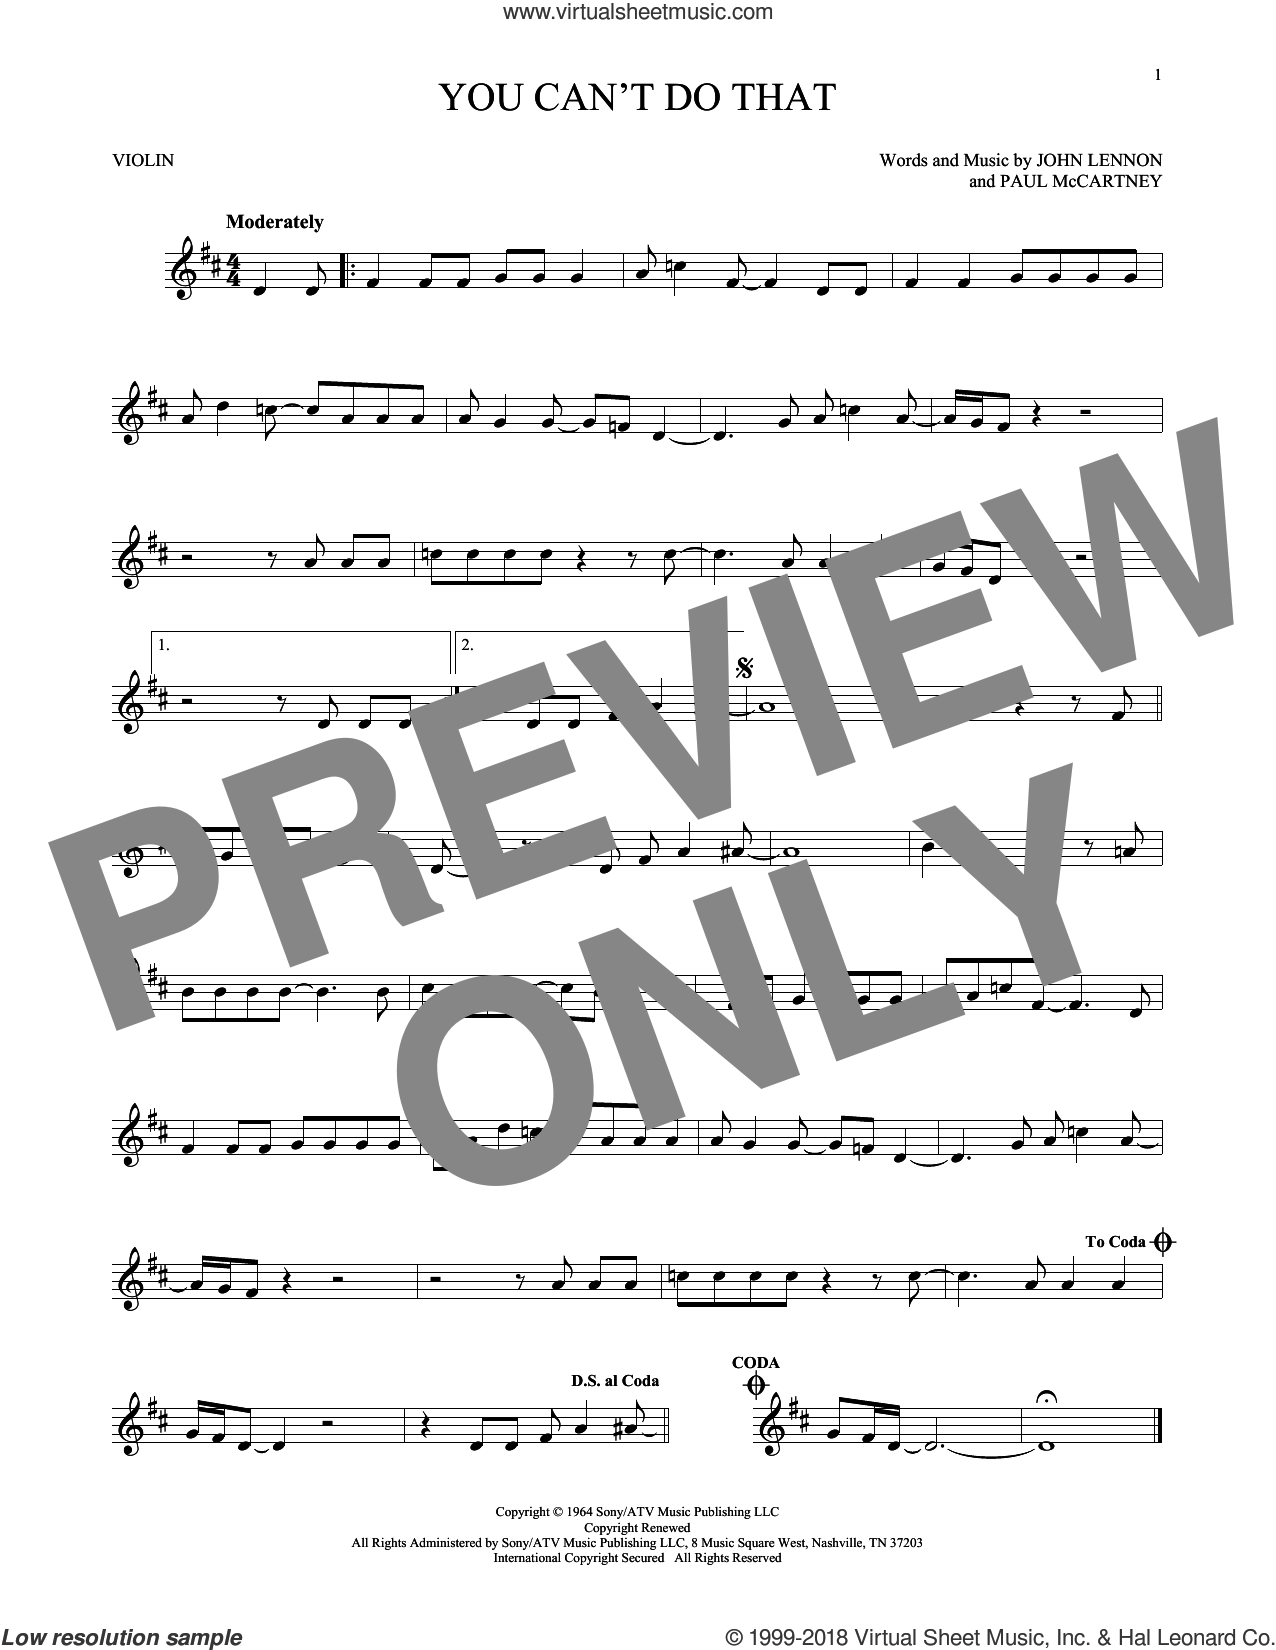 You Can't Do That sheet music for violin solo by Paul McCartney, The Beatles and John Lennon. Score Image Preview.